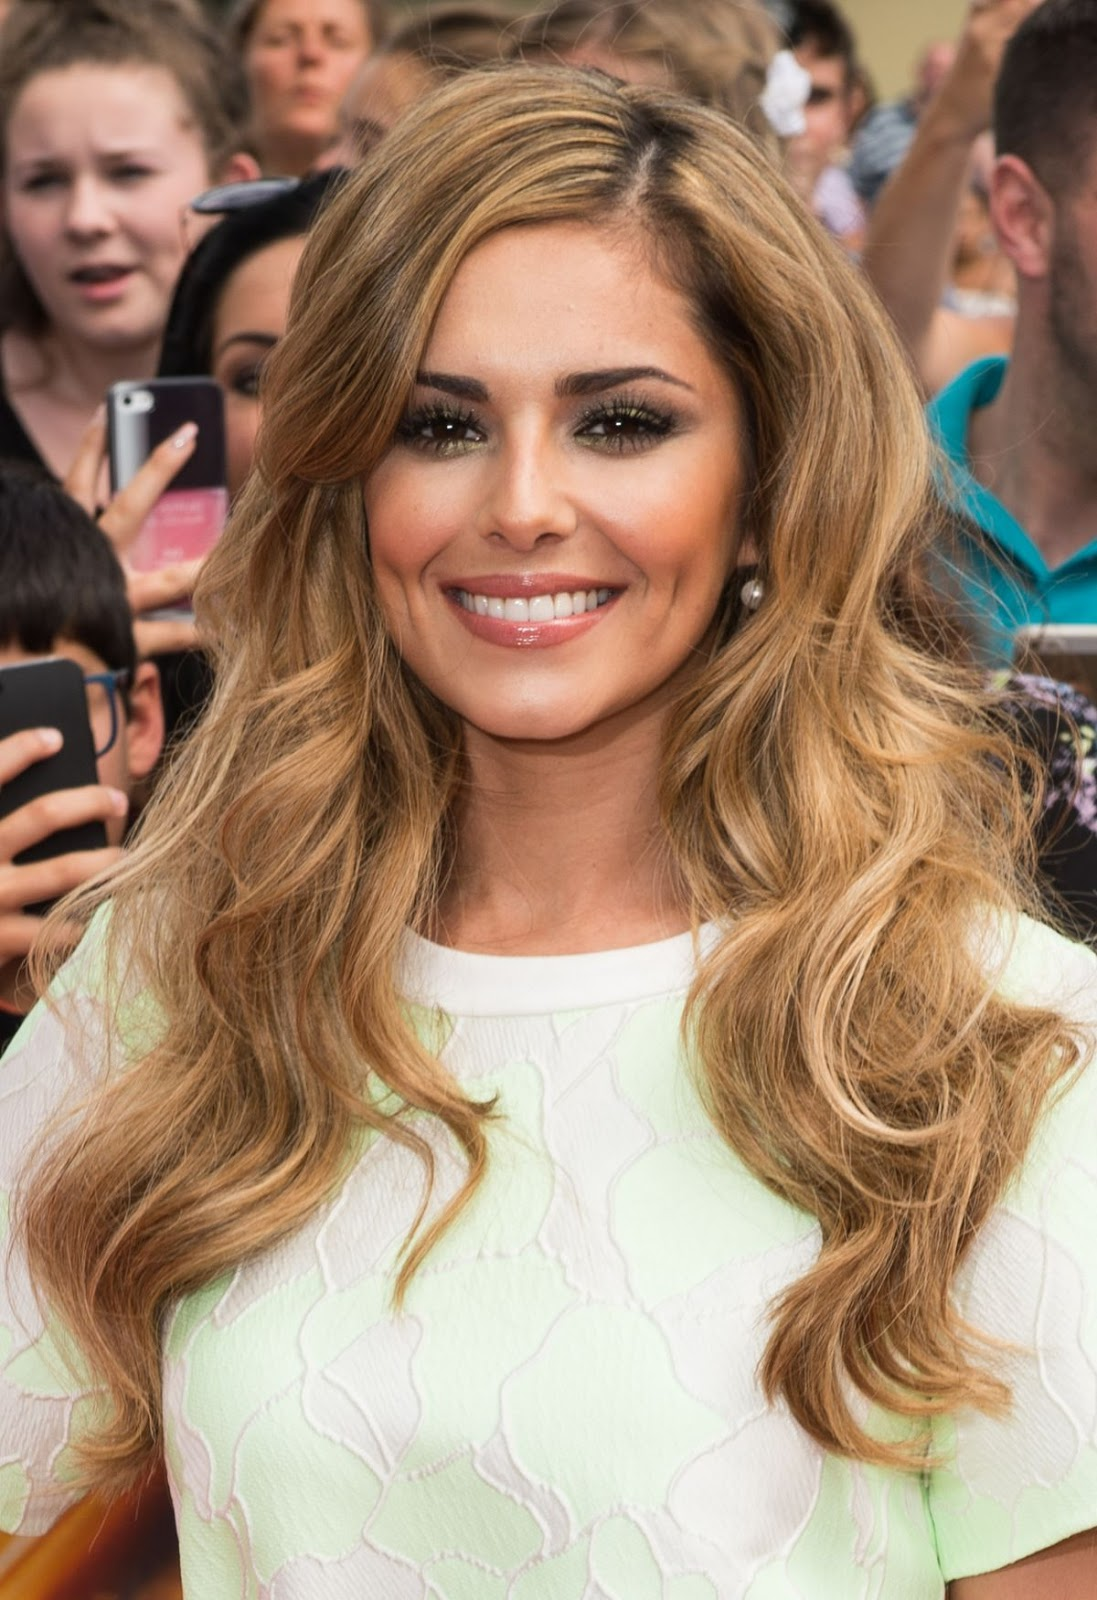 Cheryl s best outfits - a guide to the star s latest looks - Cosmopolitan 71